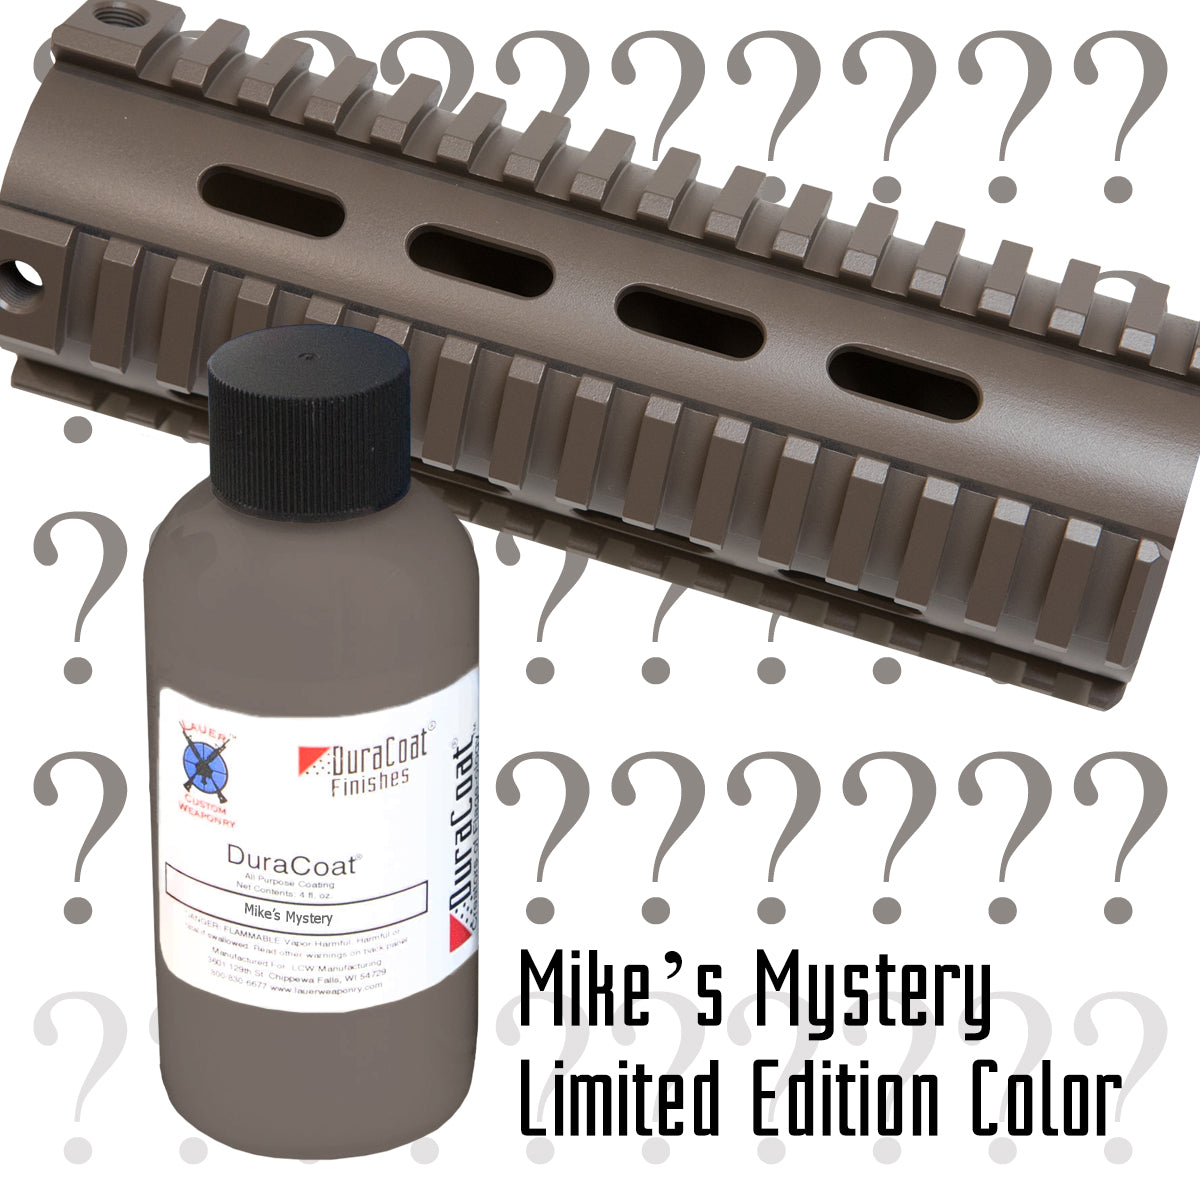 Mike's Mystery 2019 - Limited Edition DuraCoat Color